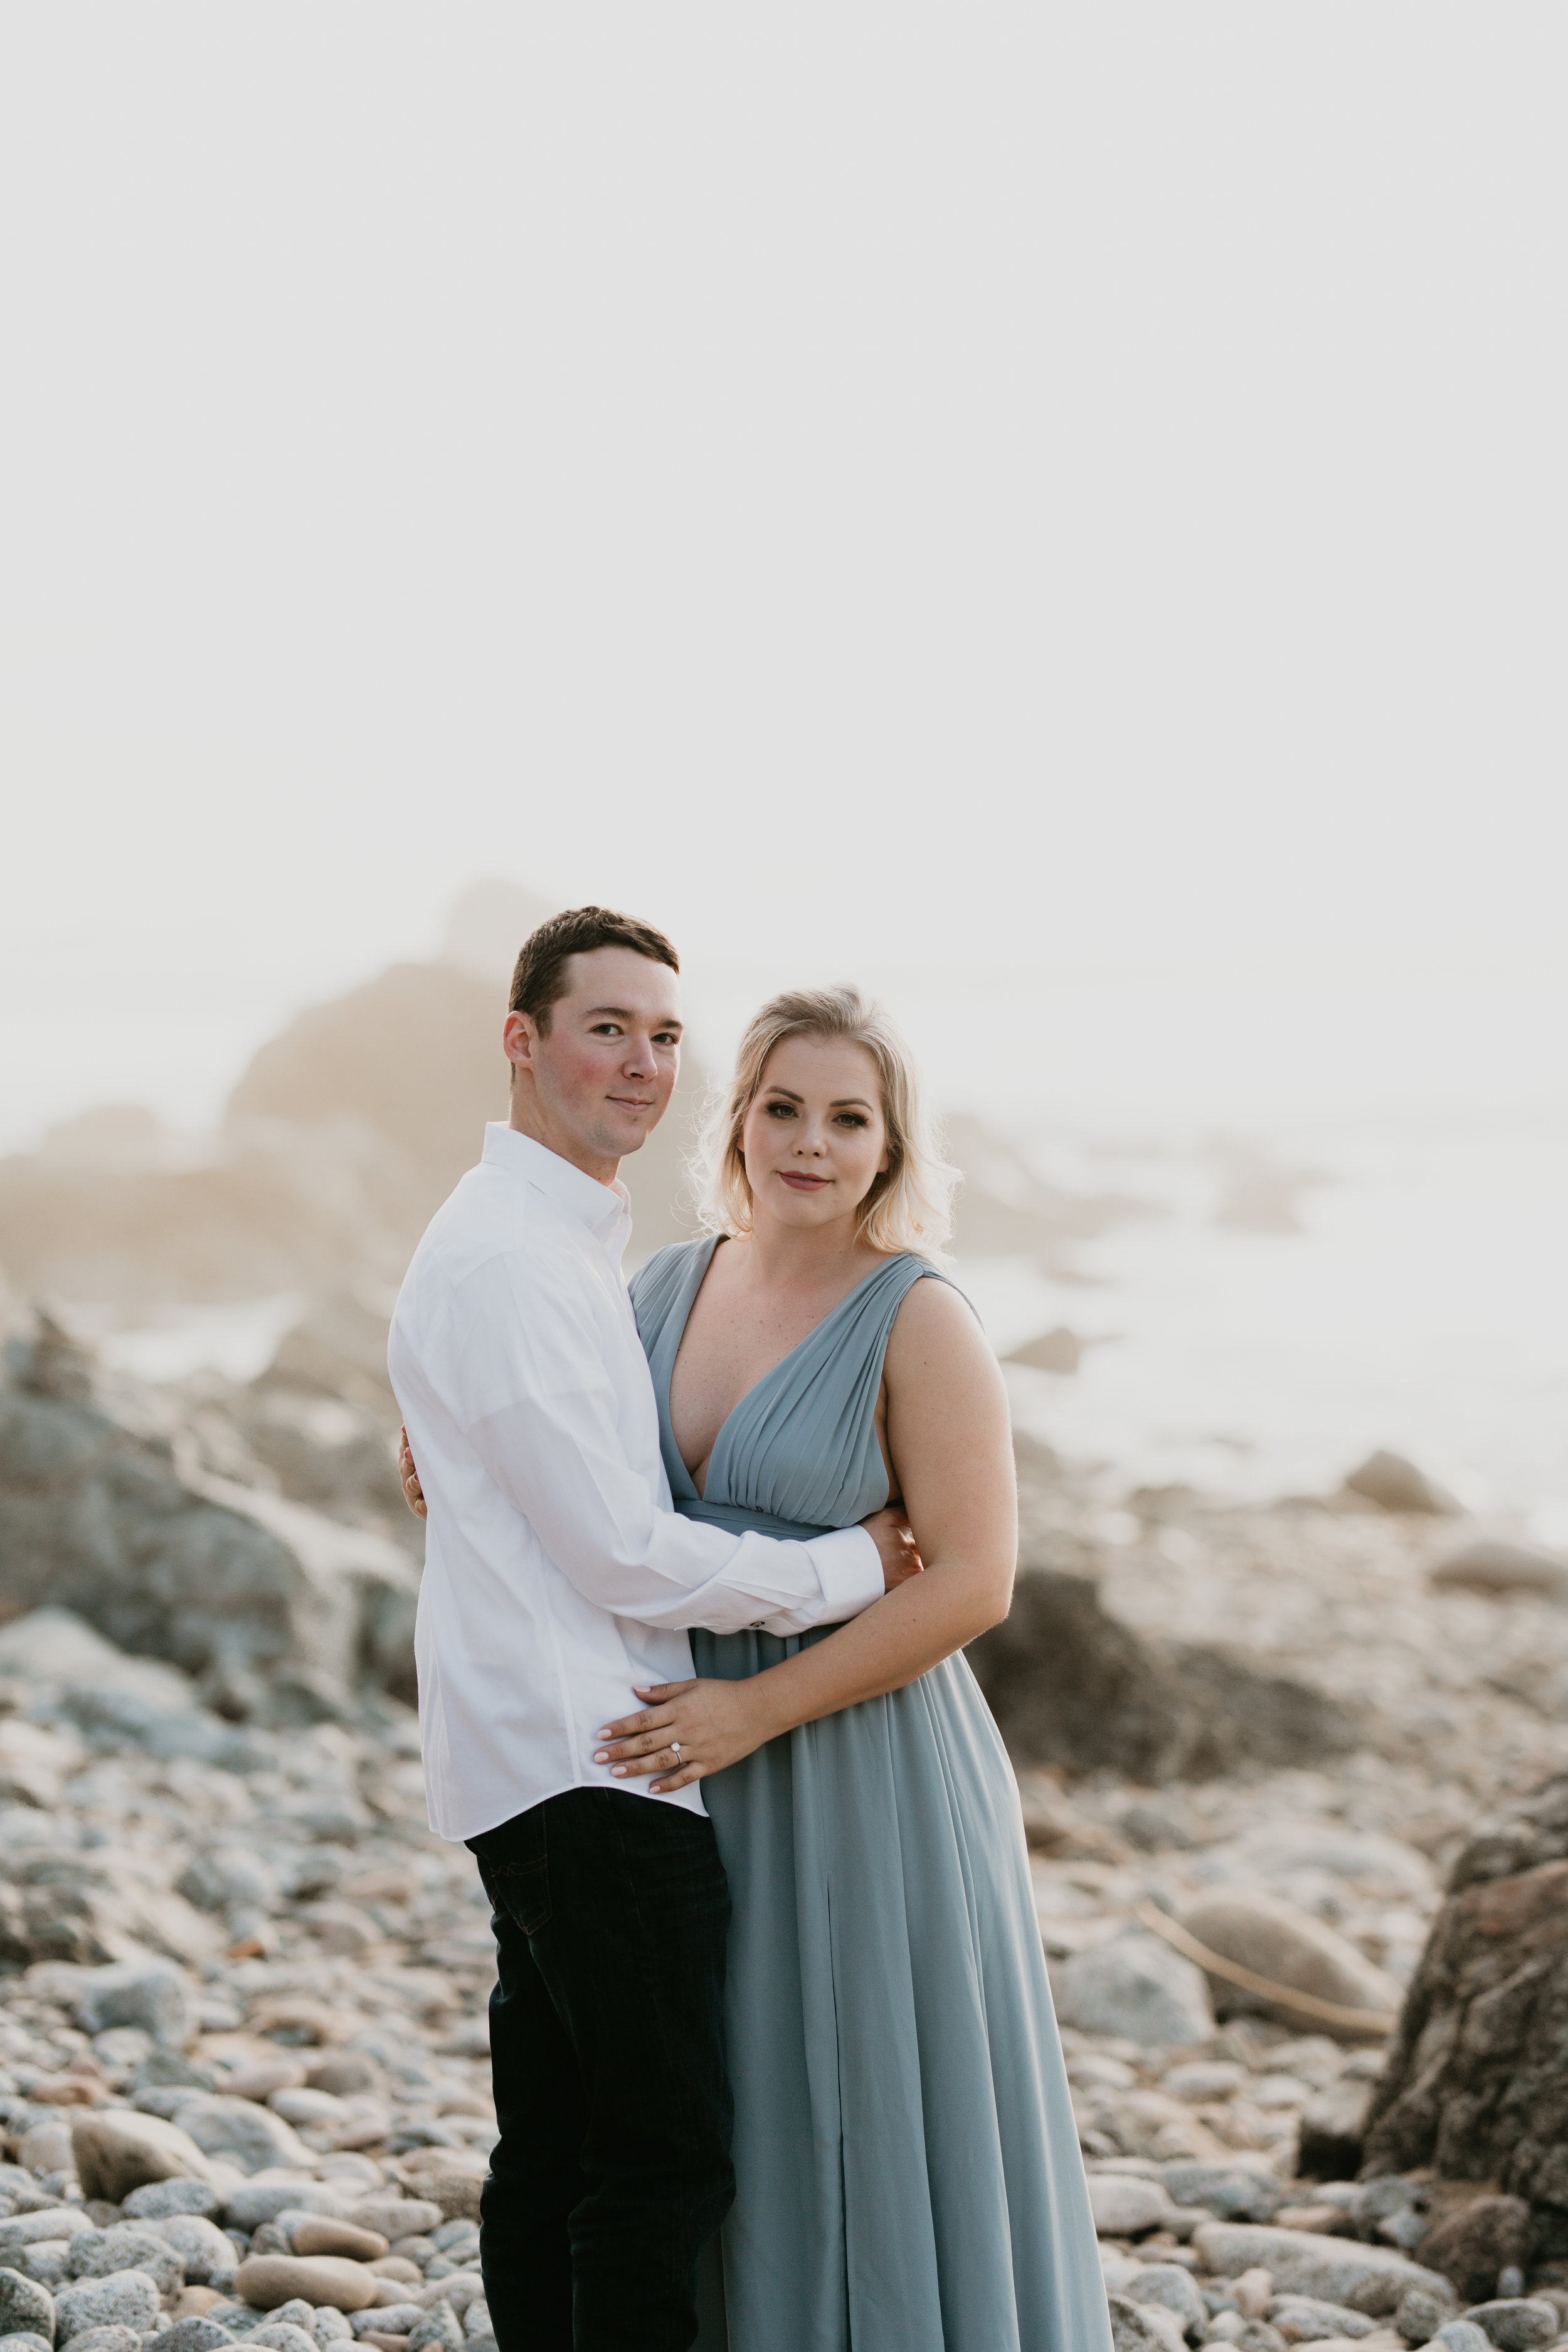 Nicole-Daacke-Photography-big-sur-garrapatta-state-park-adventurous-engagement-session-bixy-bridge-elopement-big-sur-wedding-photographer-monterey-elopement-photographer-california-golden-sunset-coast-photos-36.jpg